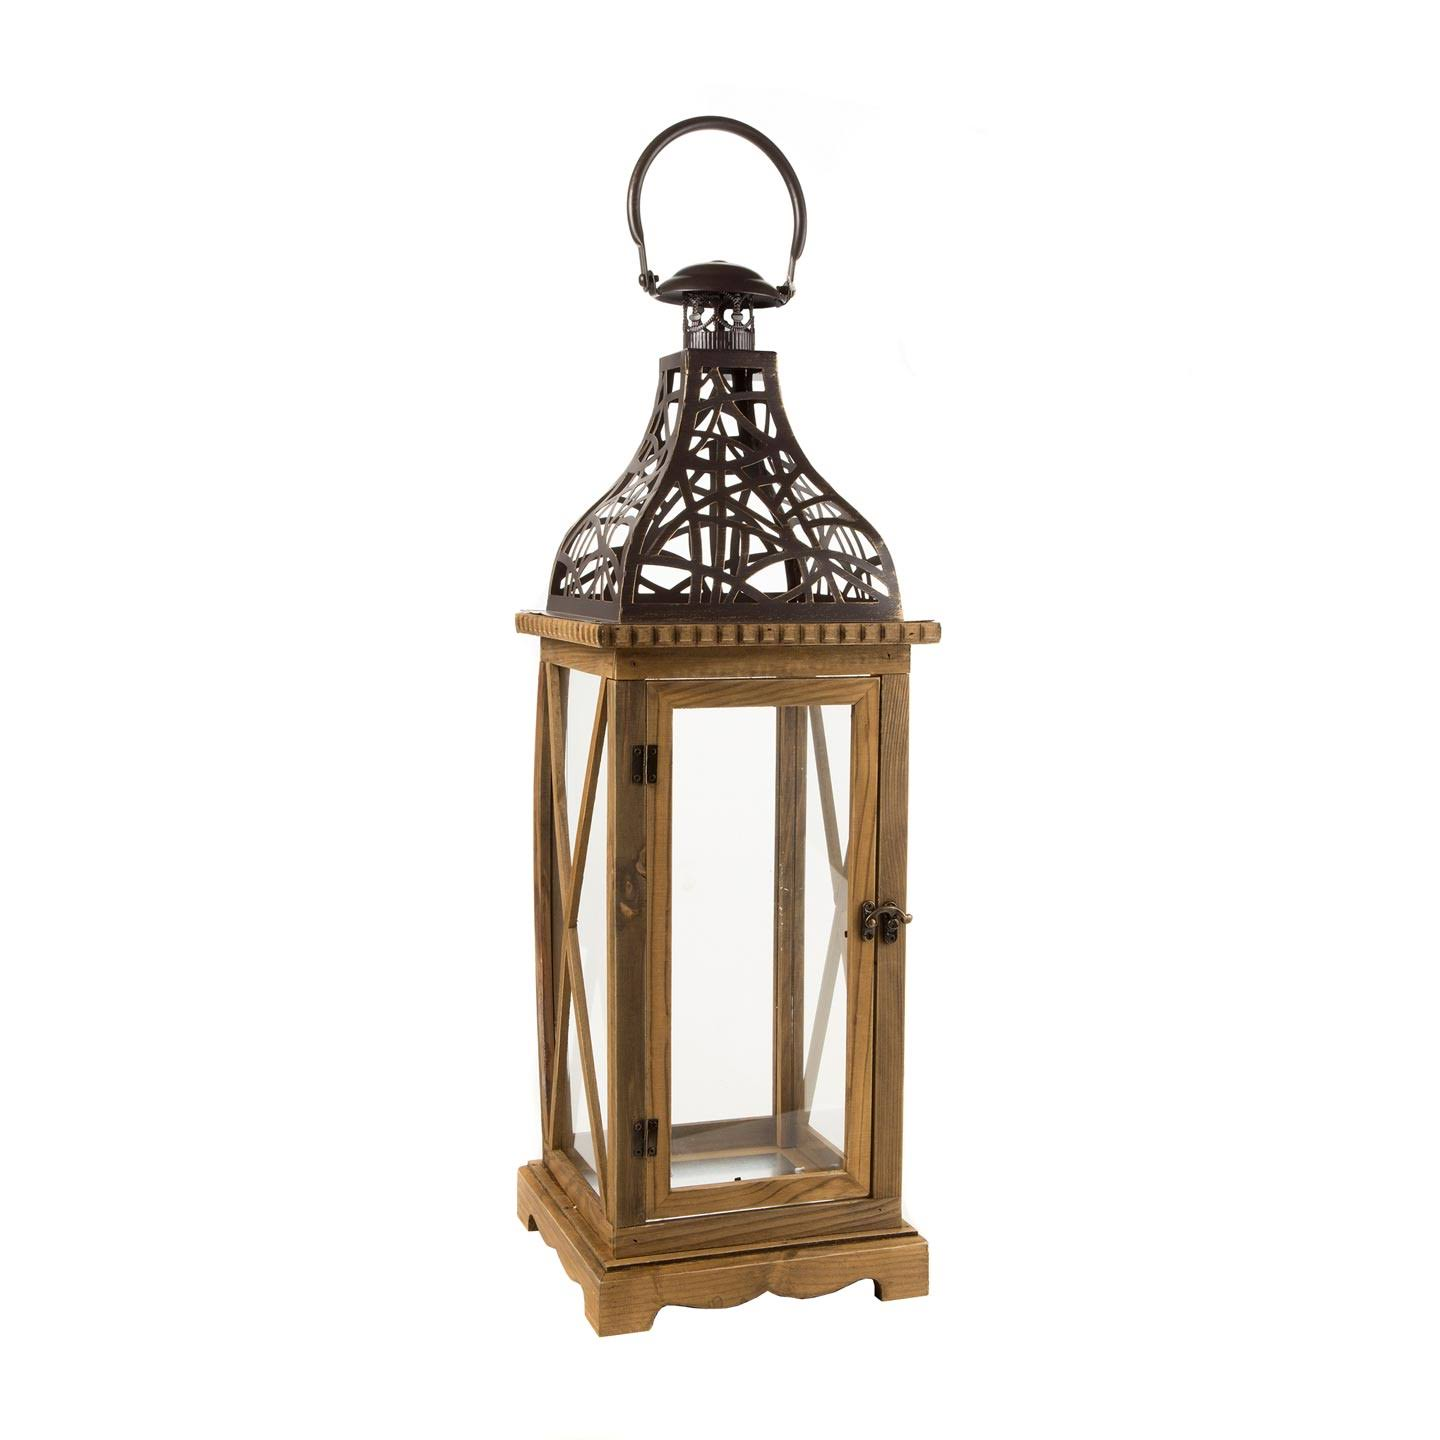 Darice Wooden Lantern - 8.85 x 26.3 x 8.85 Inches